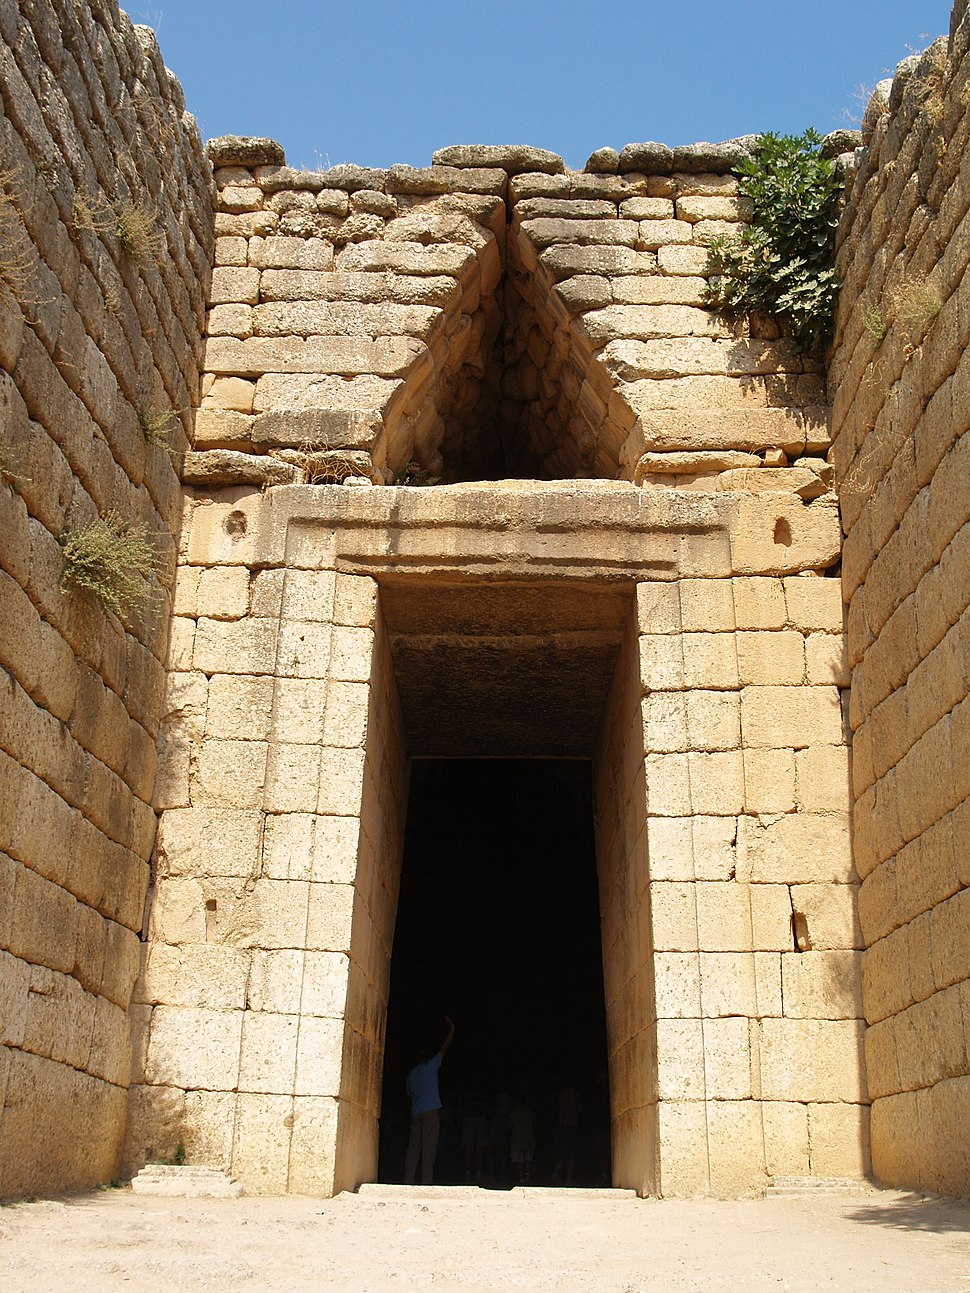 Entrance to the treasure of Atreus